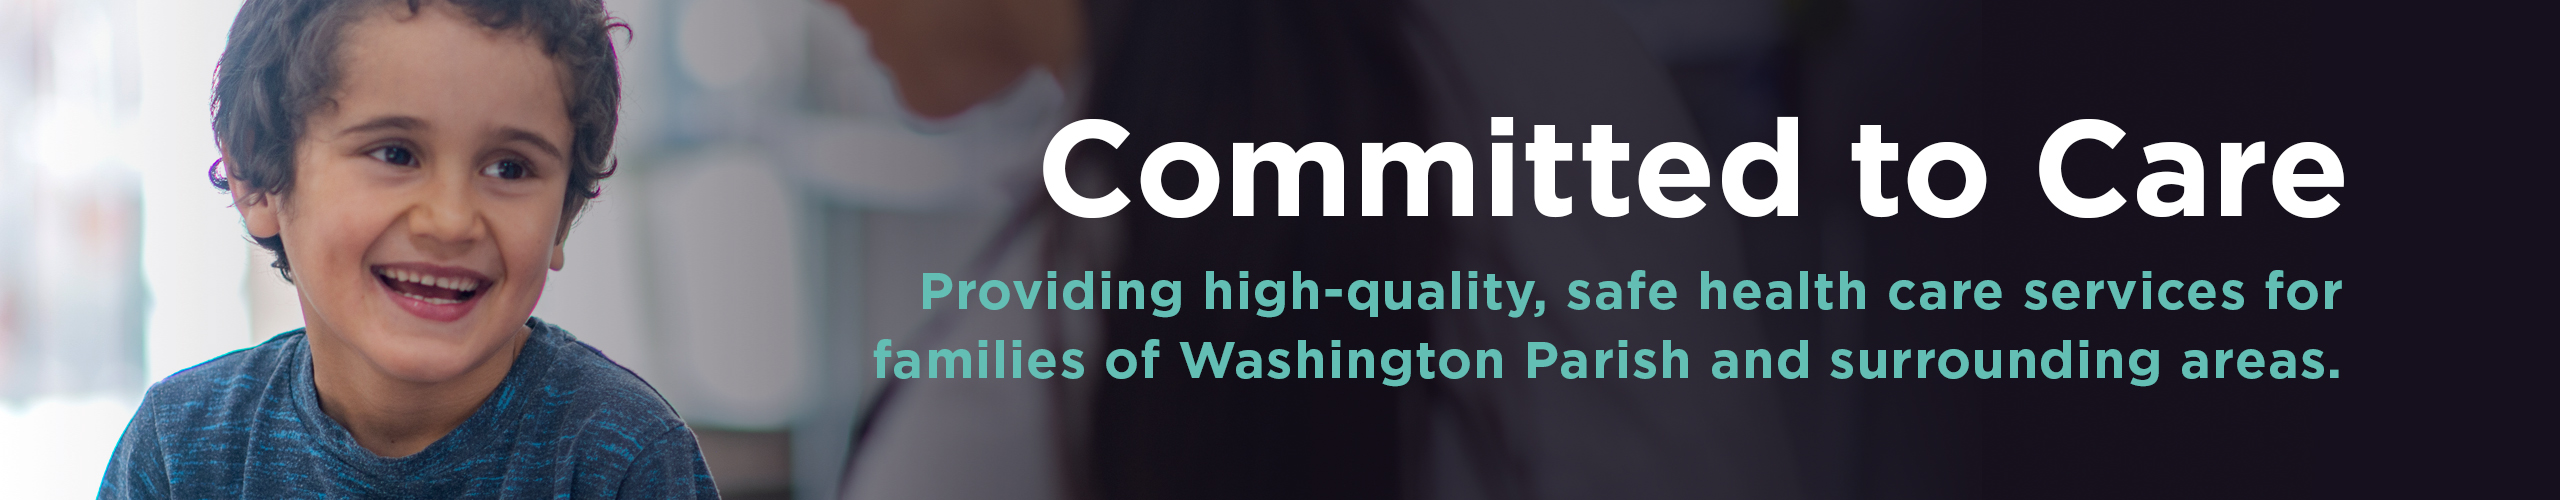 Committed to Care Providing high-quality, sage health care services for families of Washington Parish and surrounding areas.